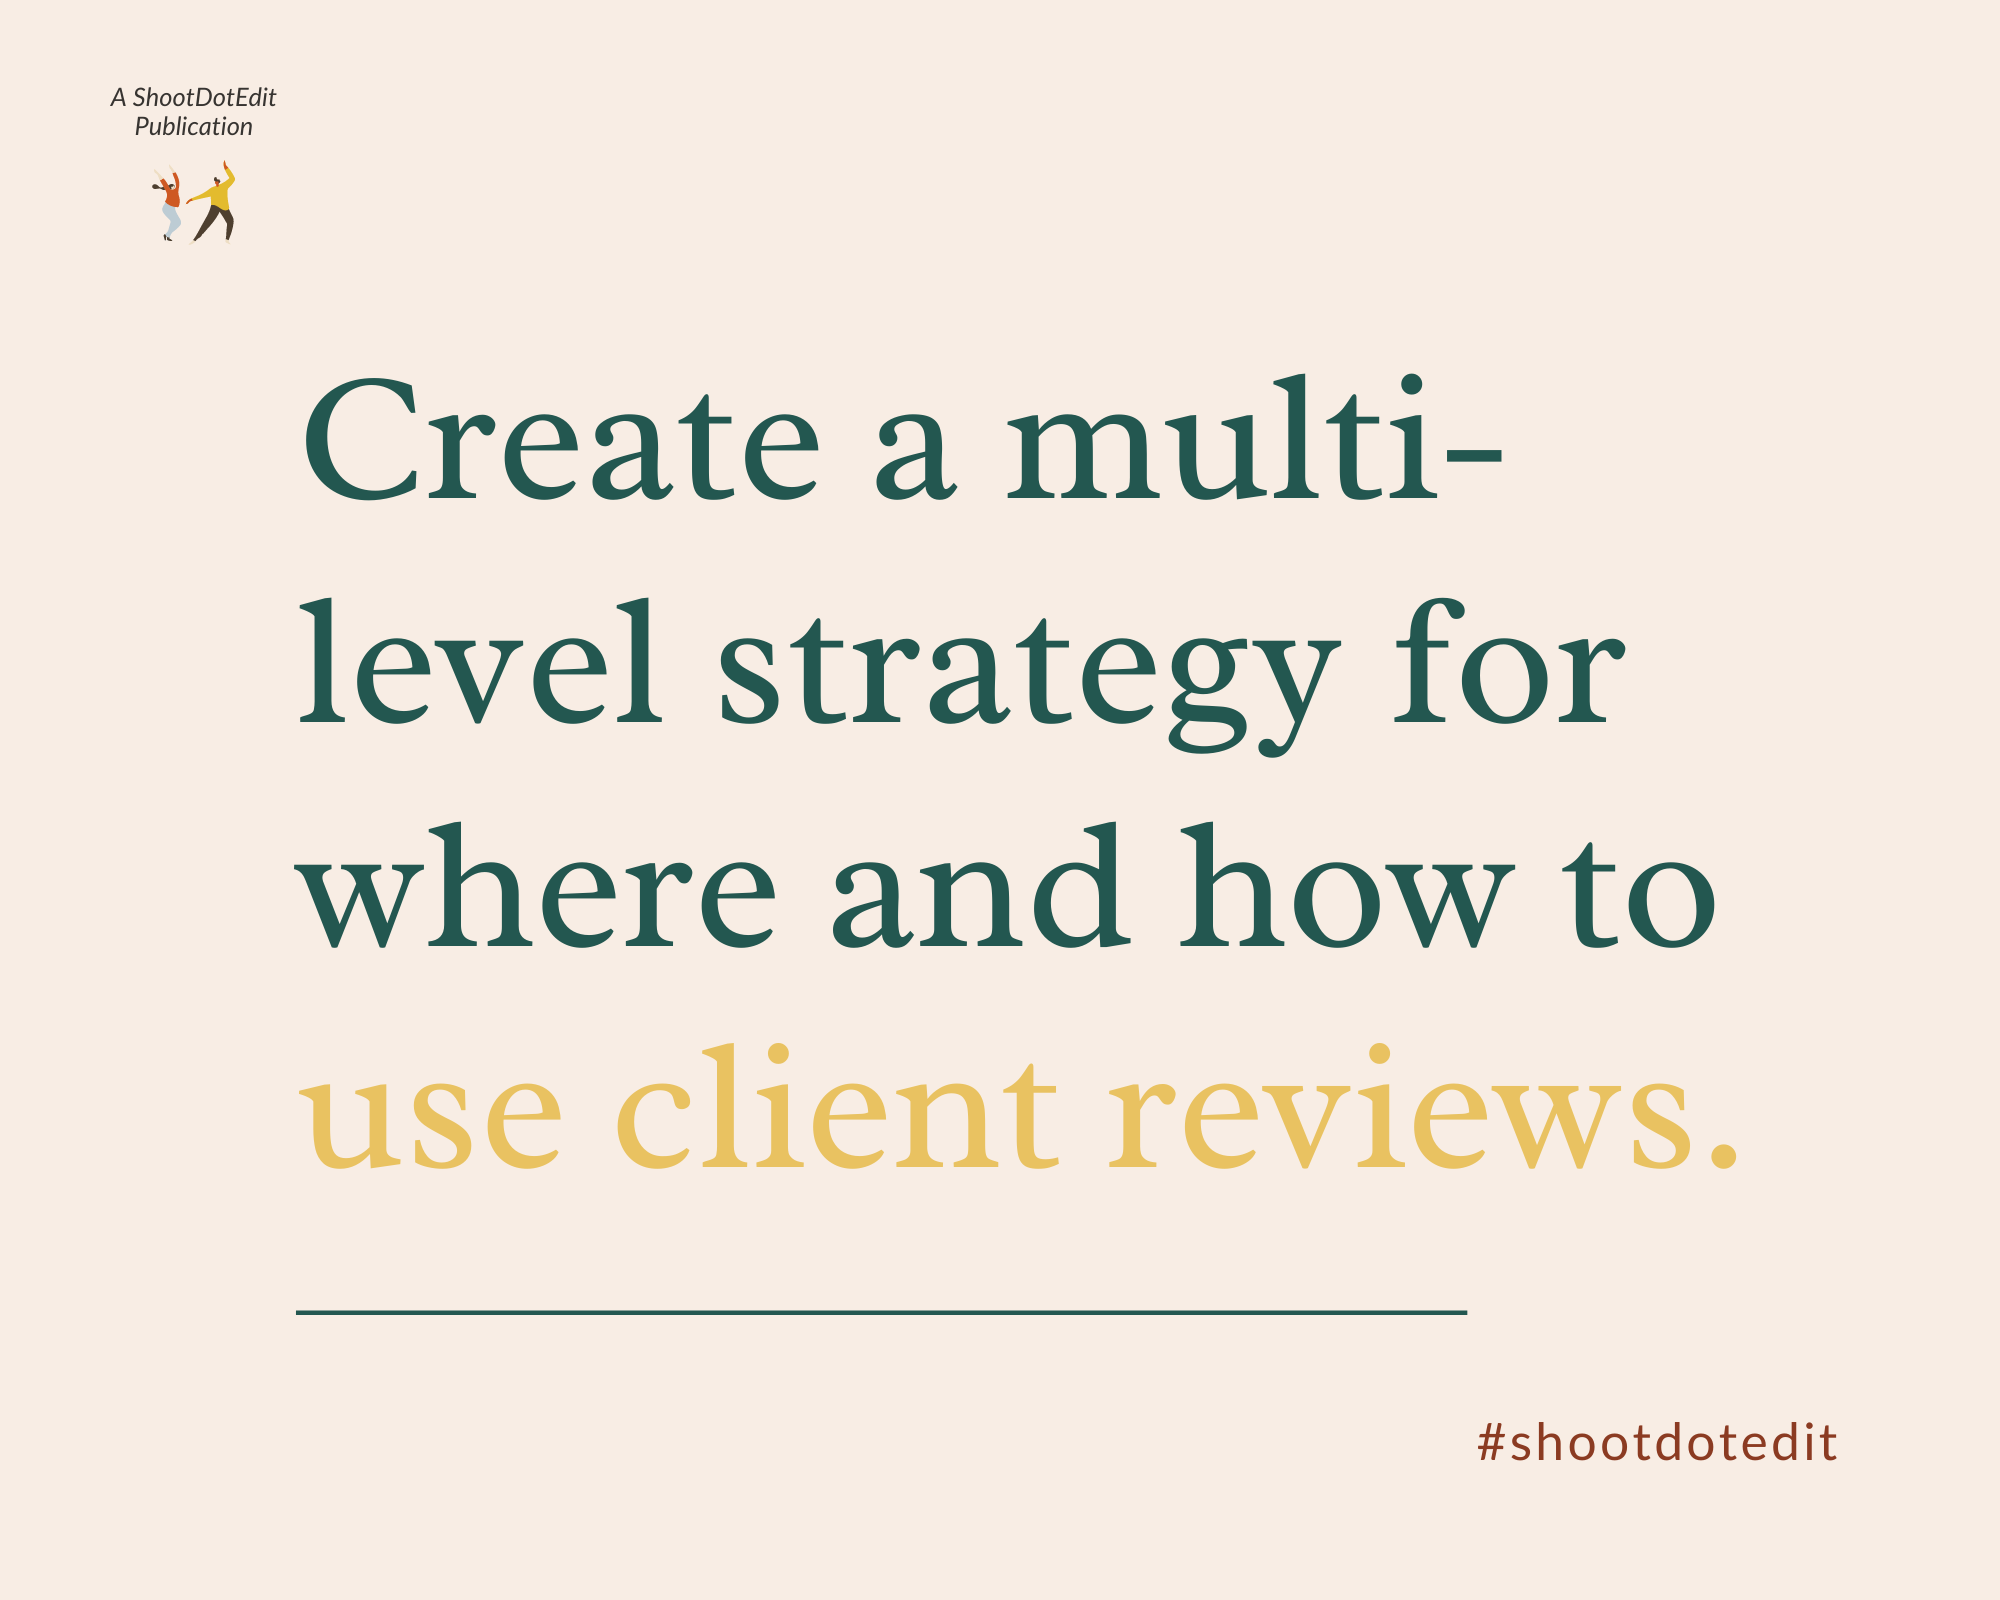 Infographic stating create a multi level strategy for where and how to use client reviews